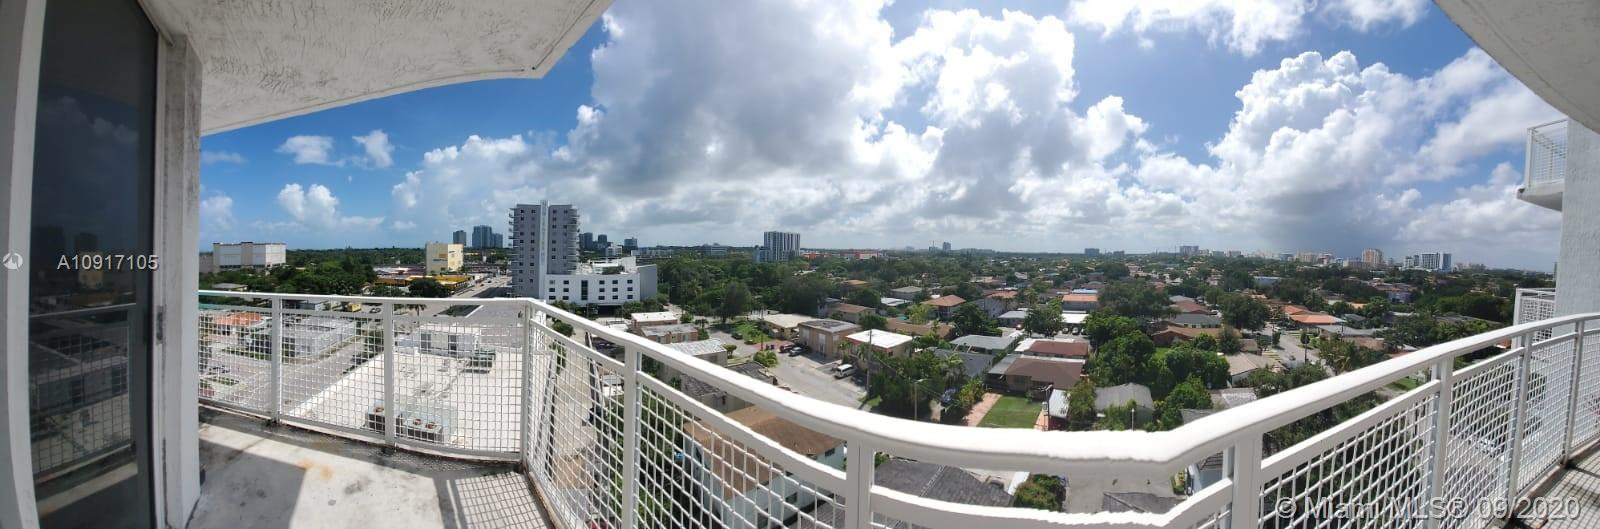 For Sale 1bed/1bath condo in GATEWAY TO THE GROVE CONDO, washer & dryer in the apartment. Tile in the Kitchen's floor and laminated water proofing flooring in the rest of the apartment,,Secured building with card entry system and intercom, parking garage, Lots of natural-lights, and panoramic views sunny balcony and city views. HOA Includes, Insurance, Cable, Water, Garbage, Security, Landscape and Common areas. Building offers an indoor pool and gym. 